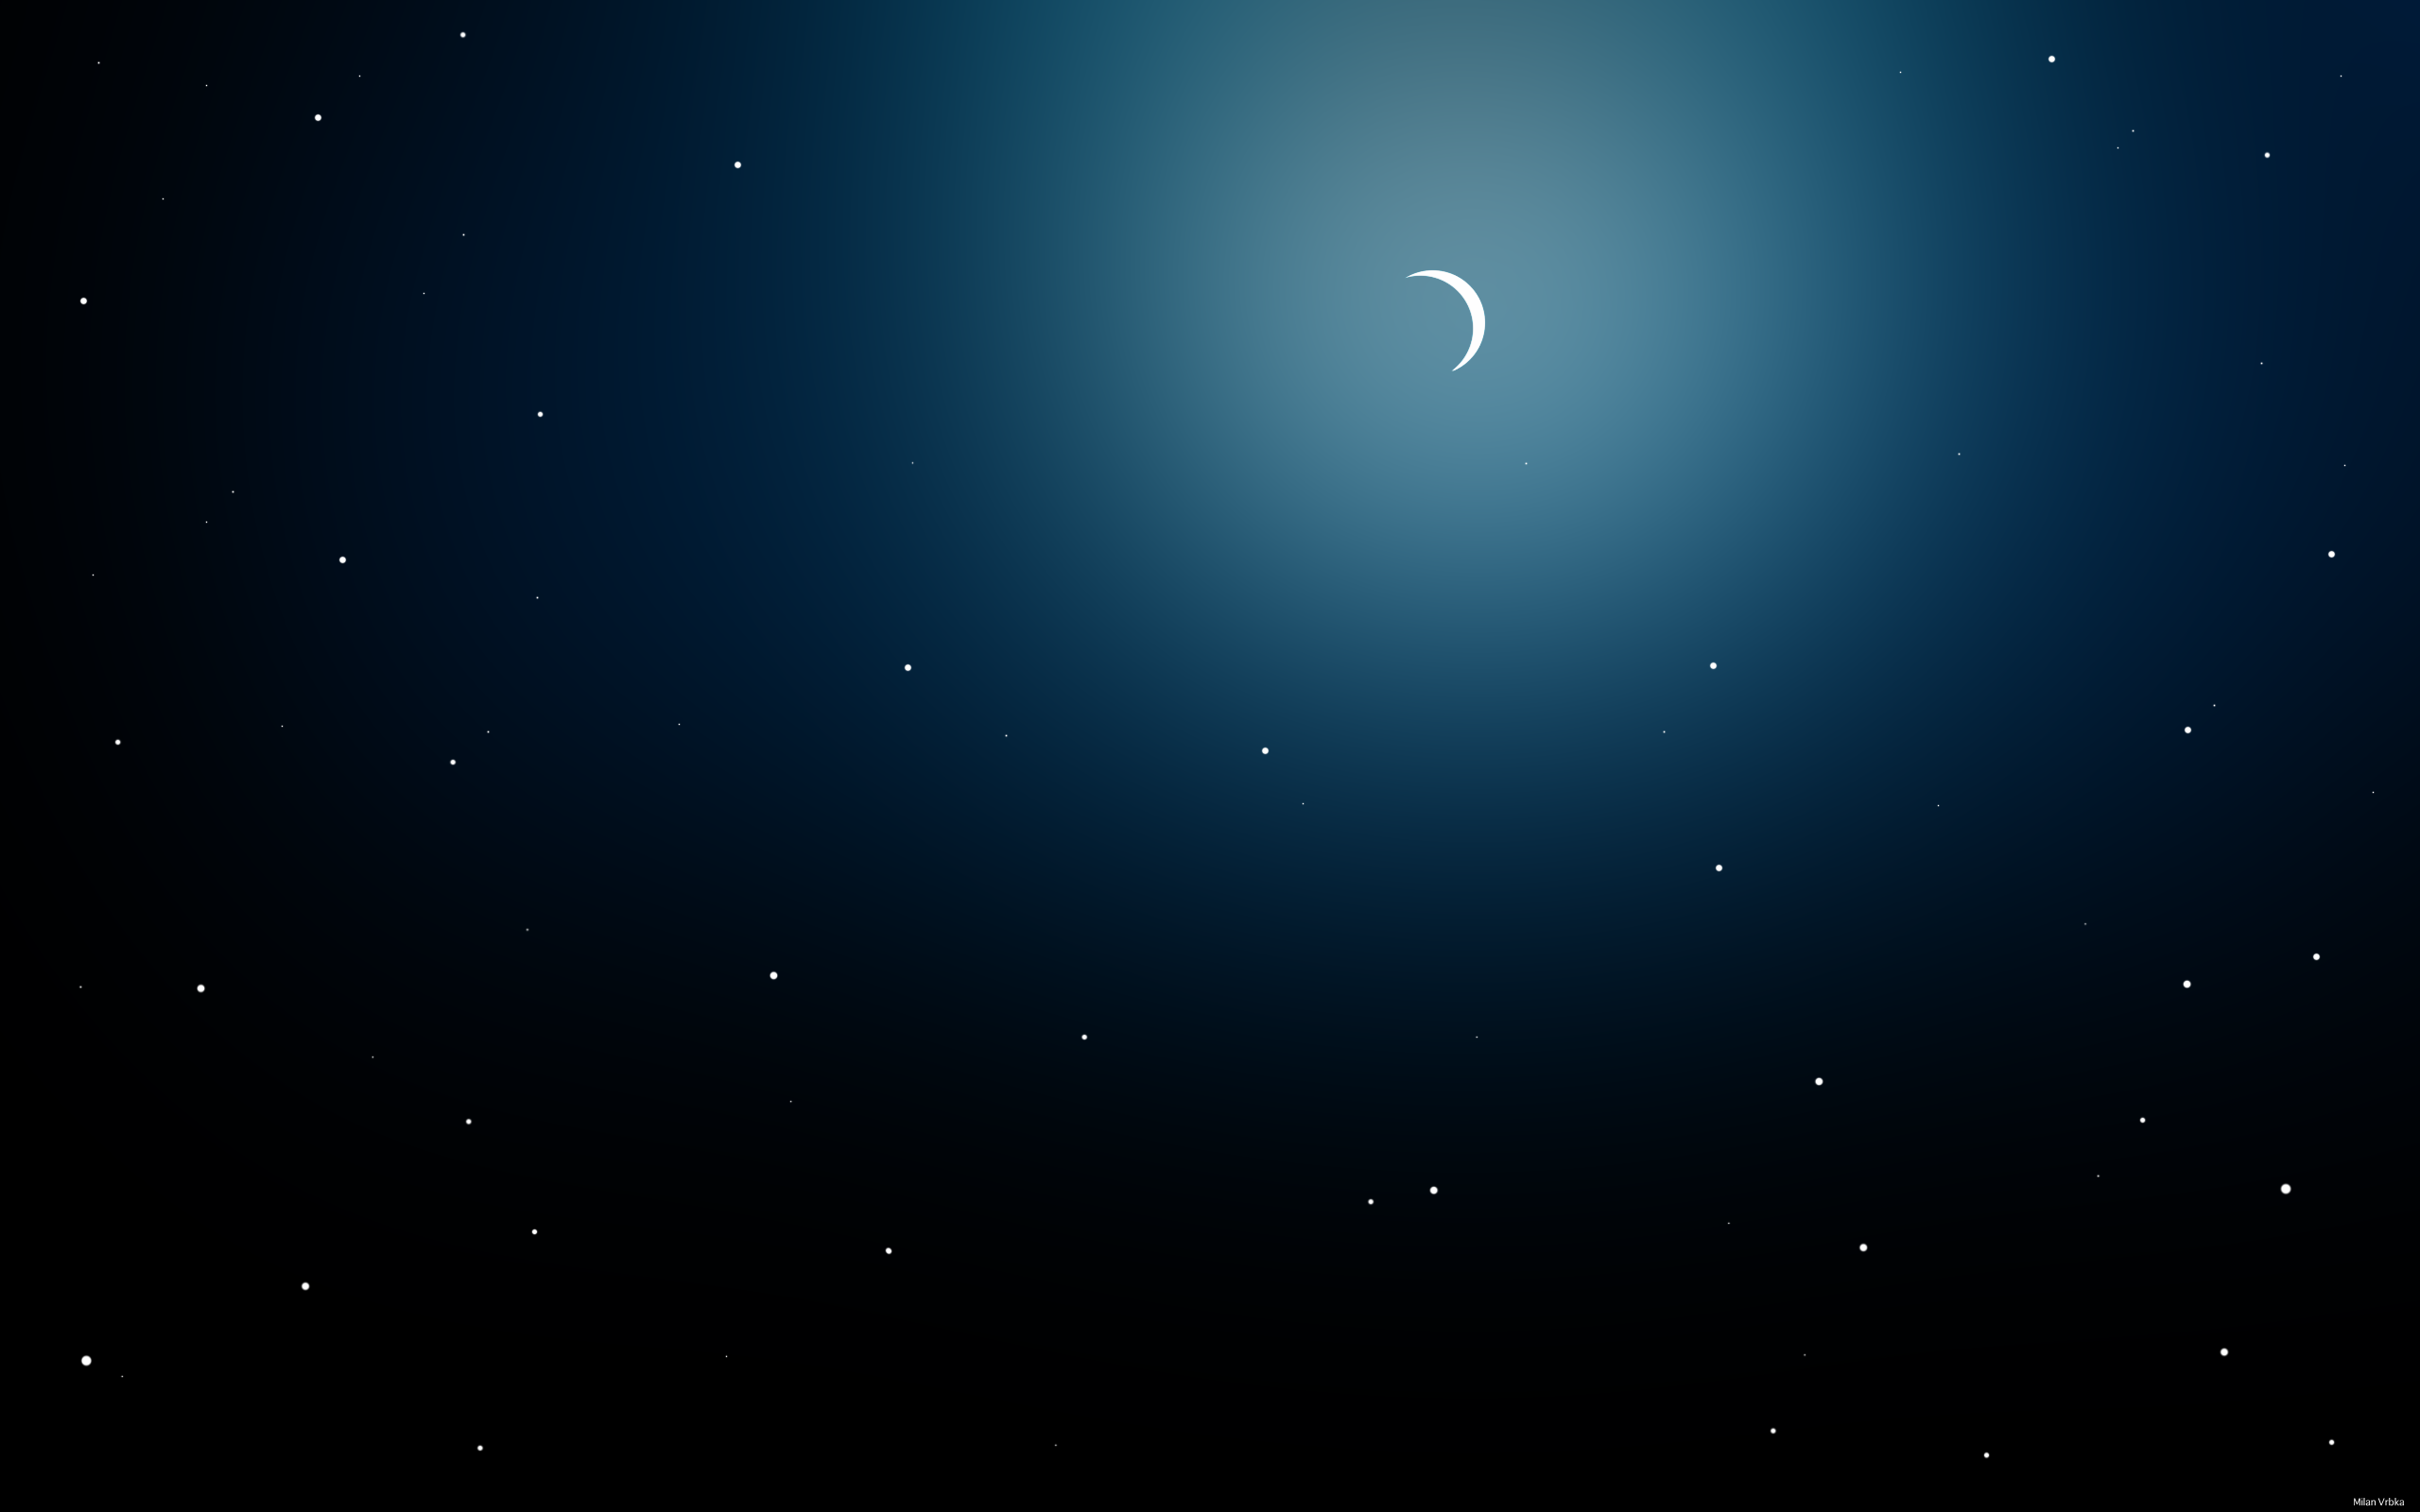 Starry Sky Background PNG - 151270